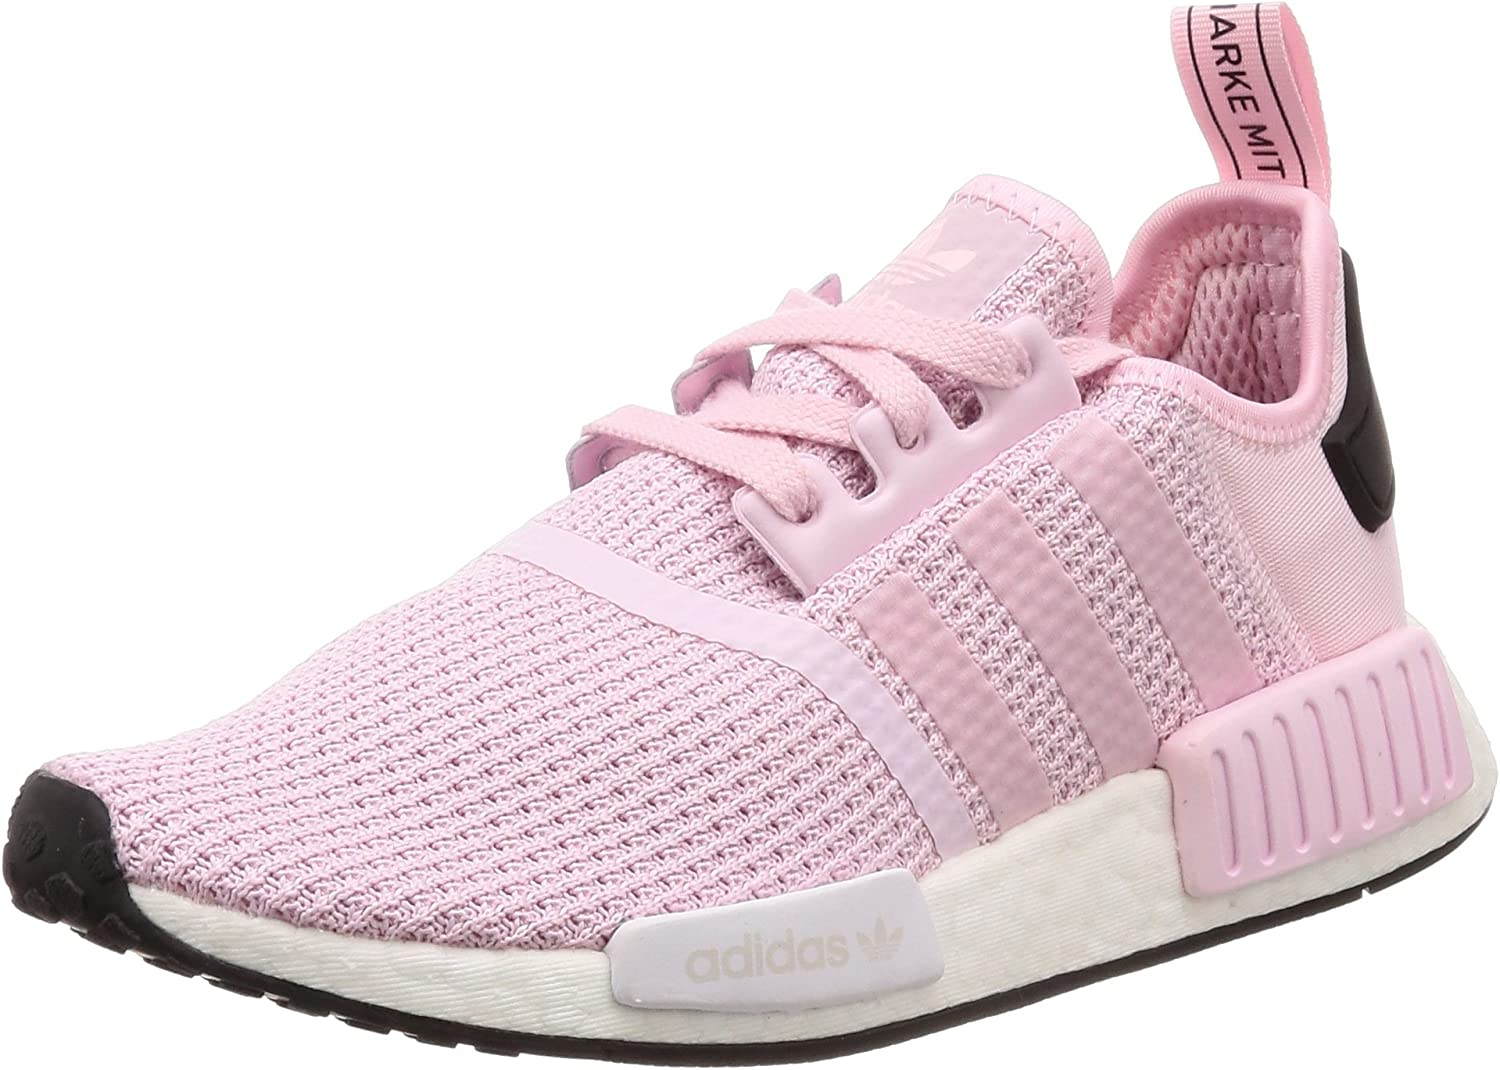 Adidas Originals Women's NMD_R1 Sneakers Pink